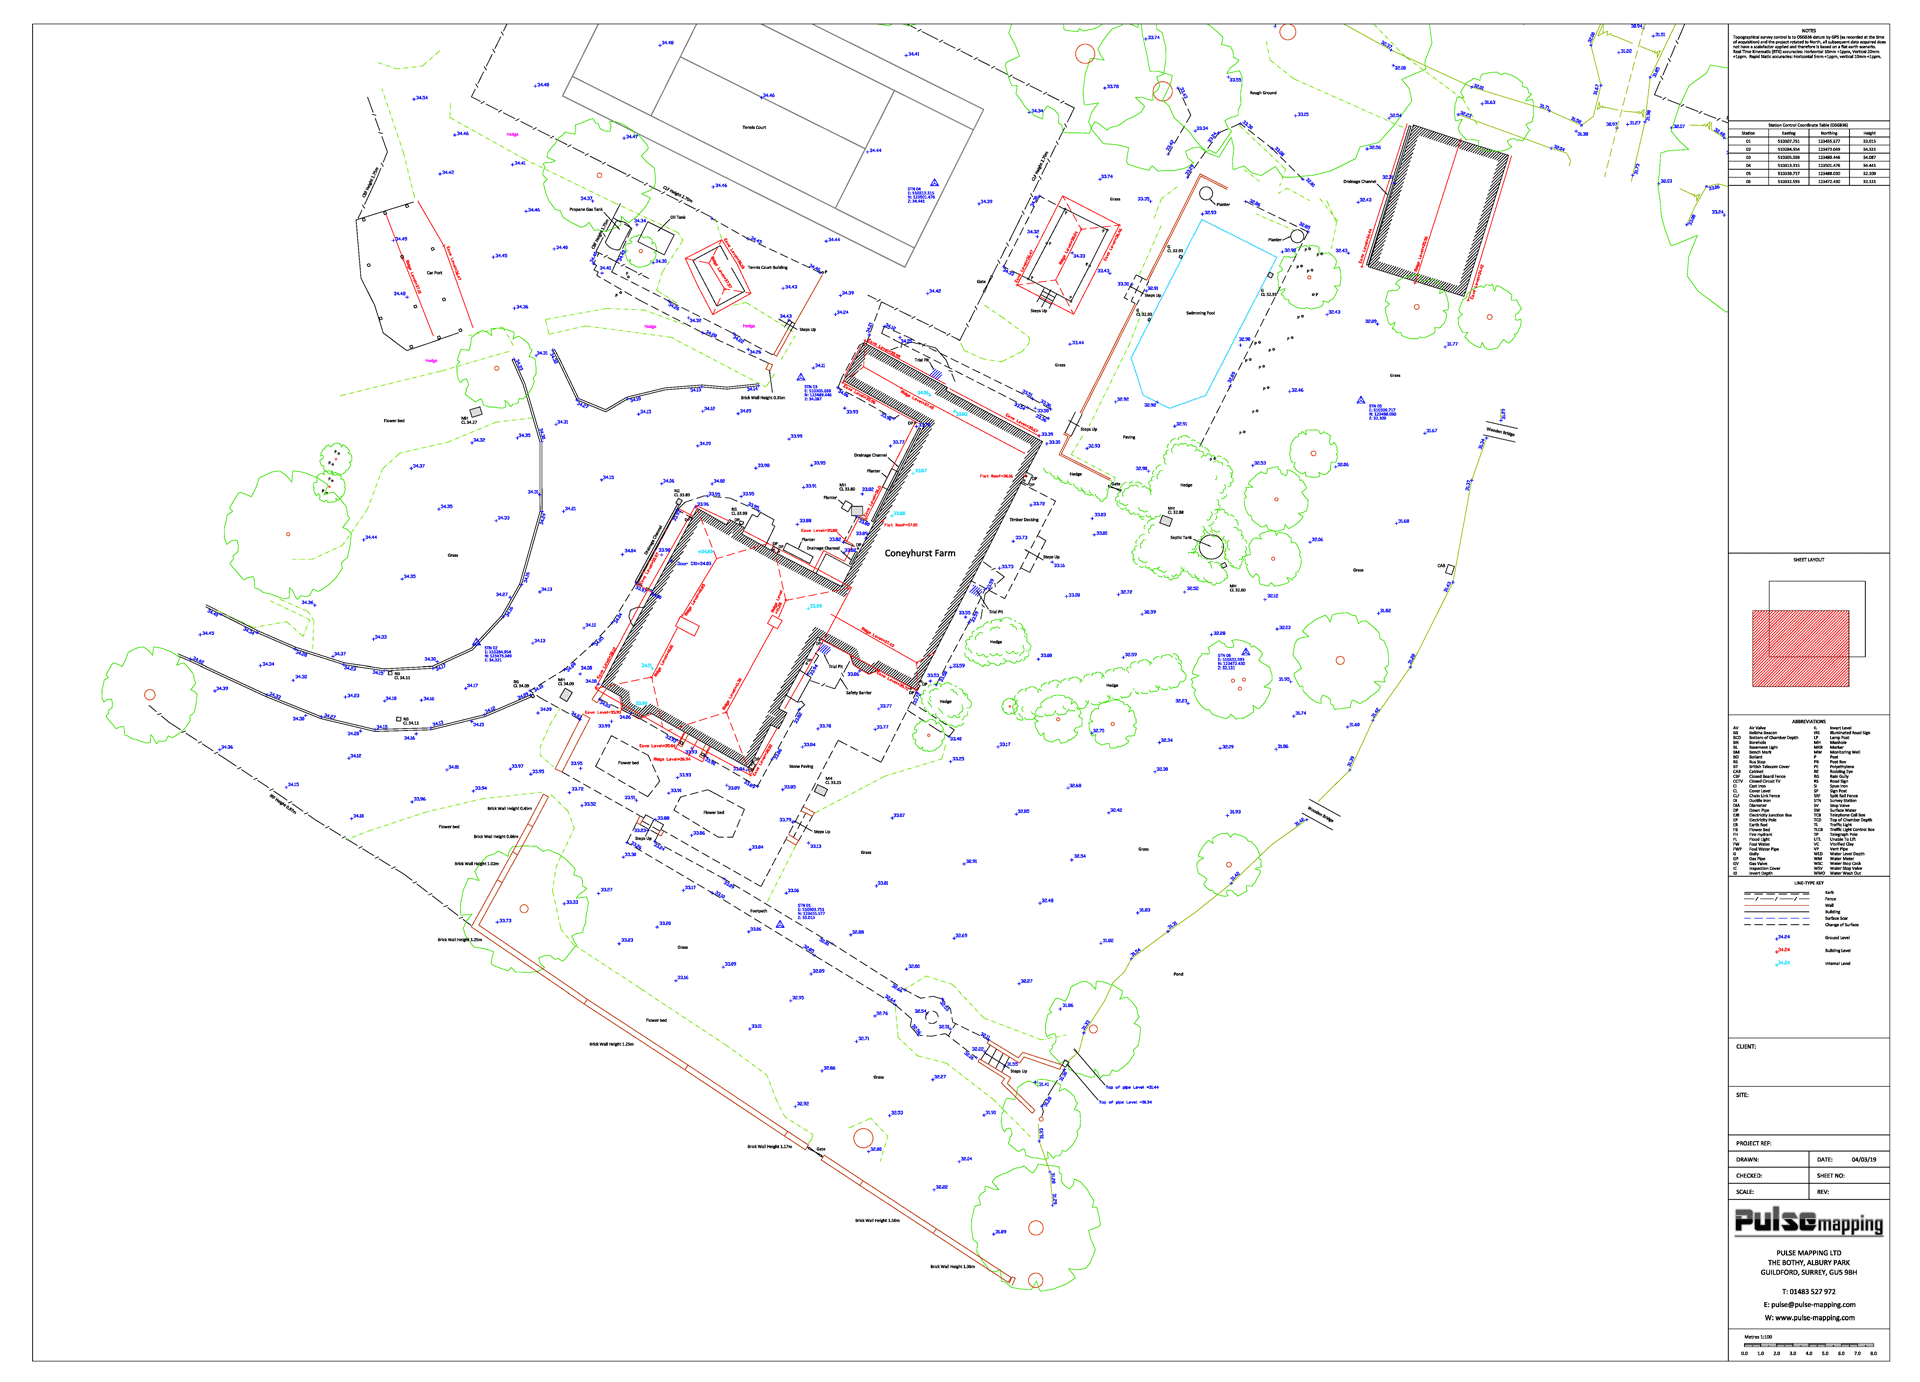 Land, levels and building positions surveyed